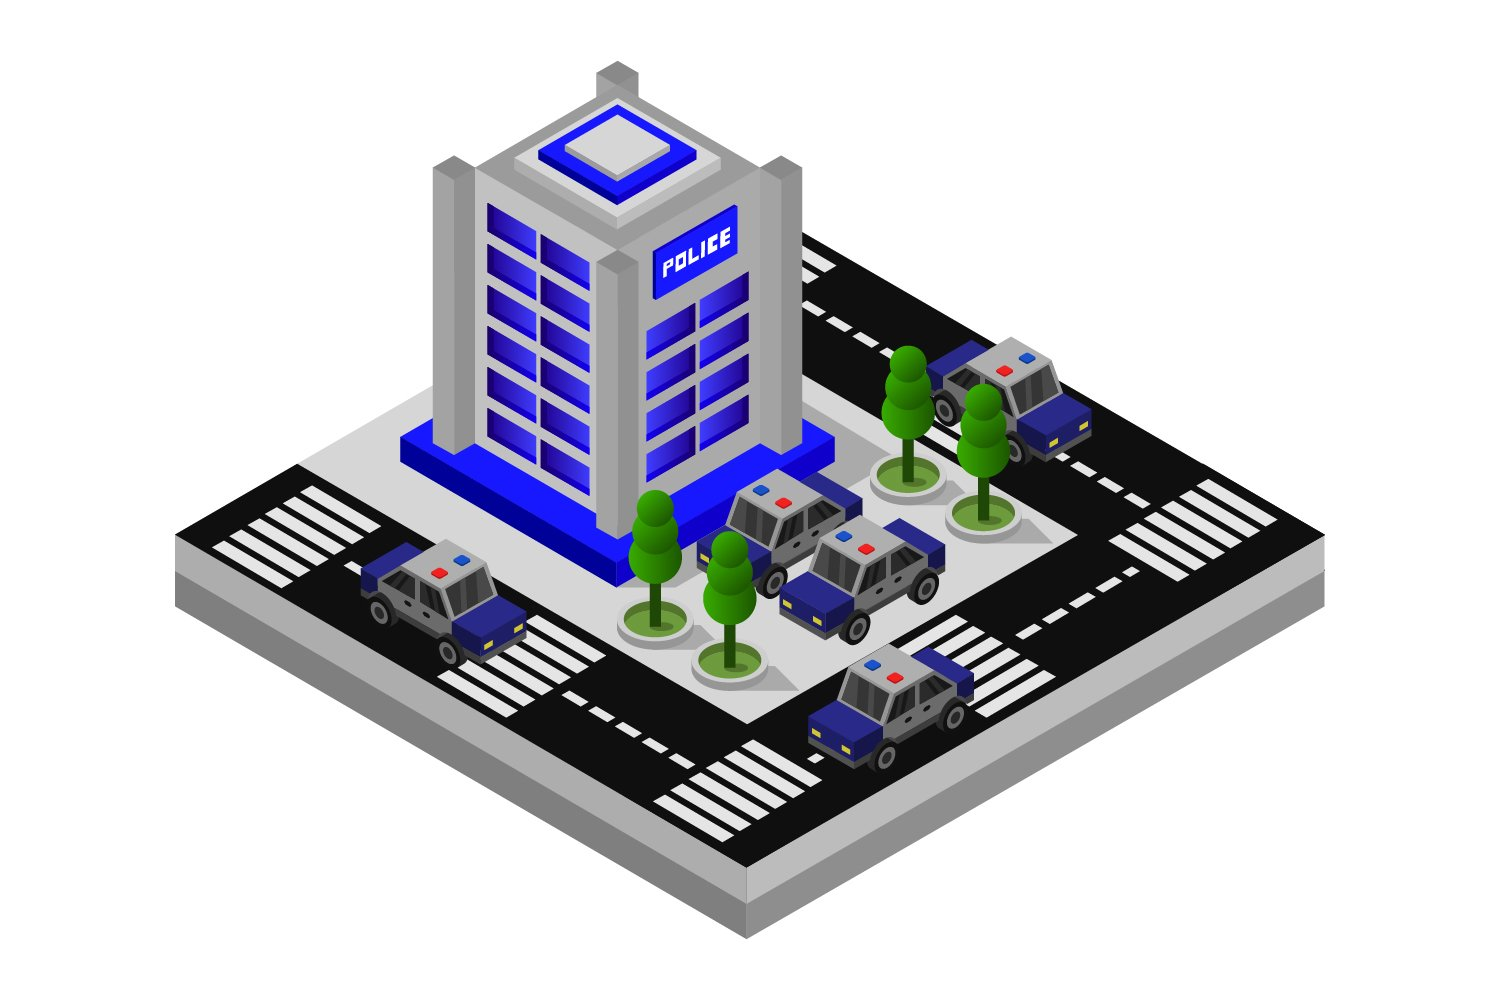 isometric police station example image 1